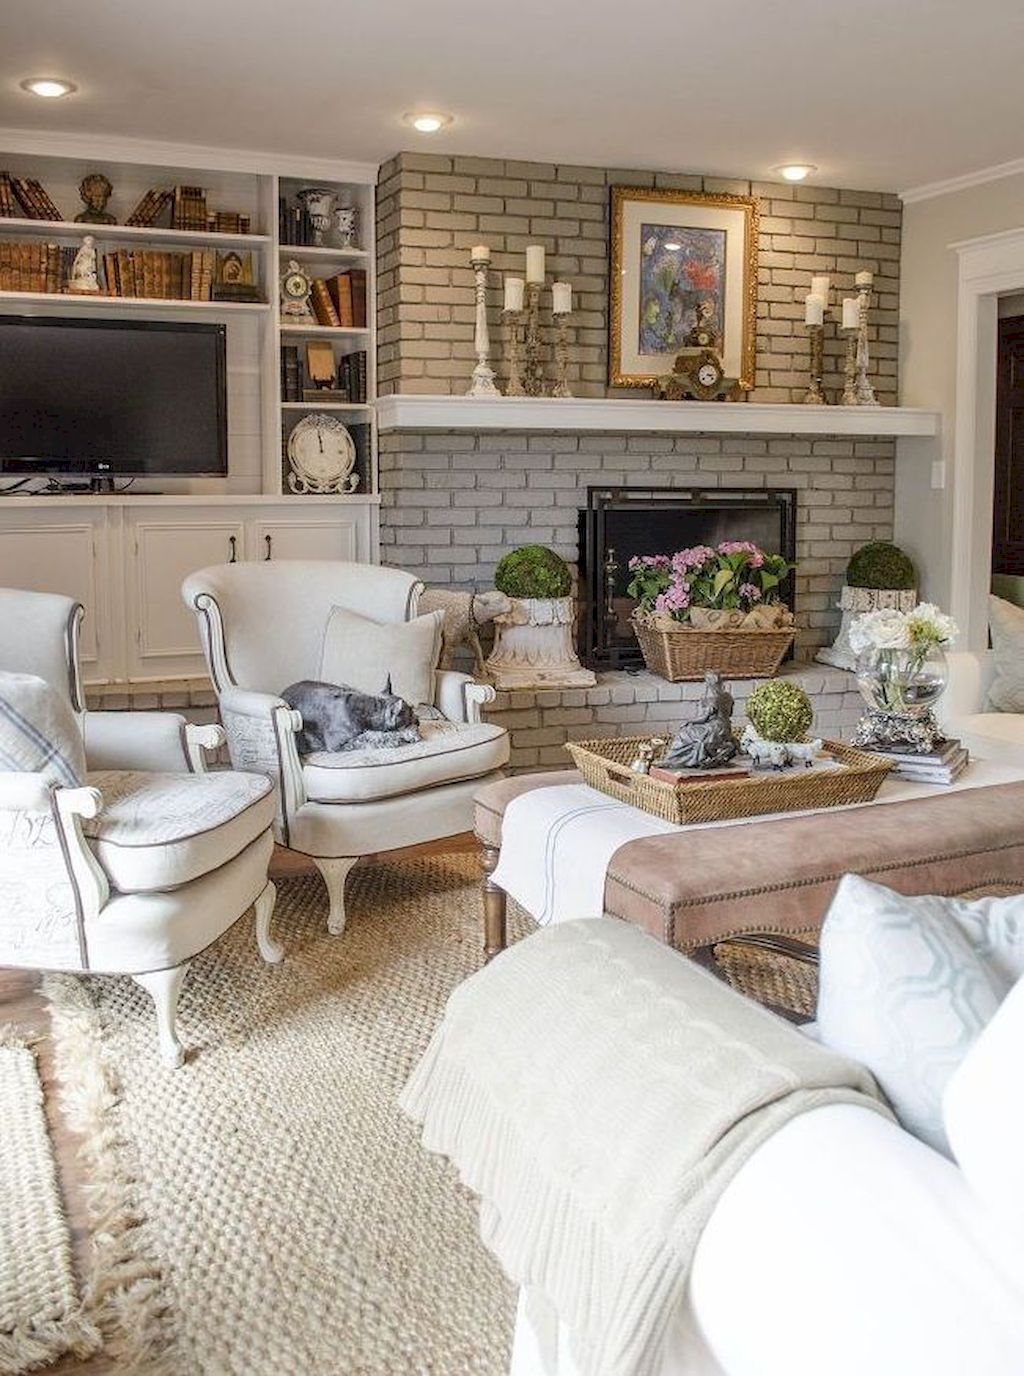 Beautiful French Country Living Room Decor Ideas 24 In 2020 French Country Living Room French Country Decorating Living Room Country Living Room